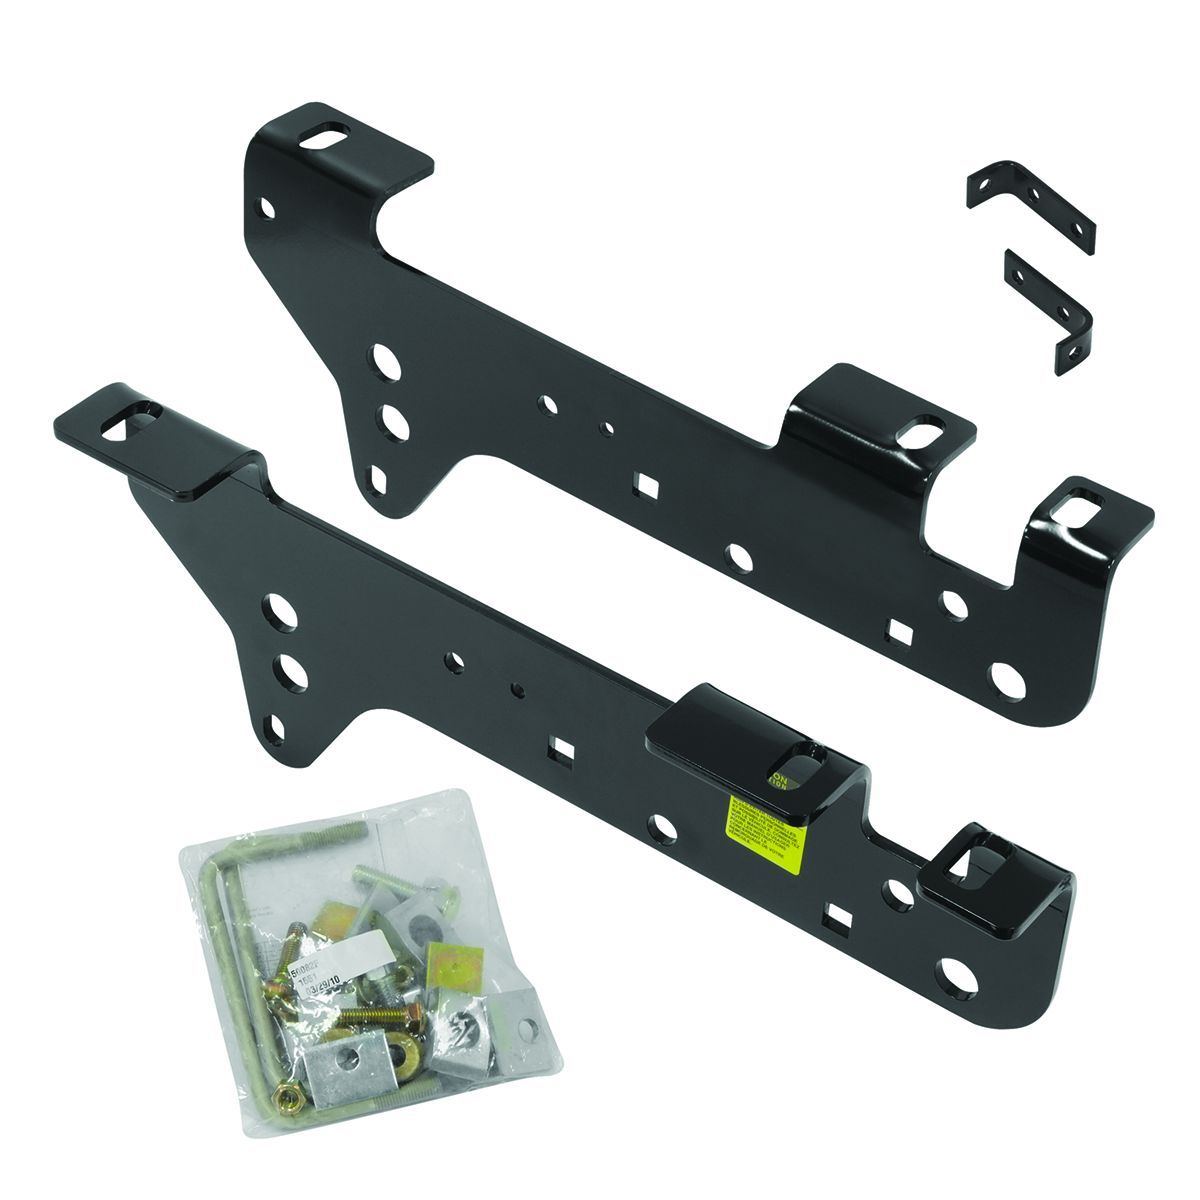 50082 Reese Fifth Wheel Trailer Hitch Mount Kit 2 Brackets